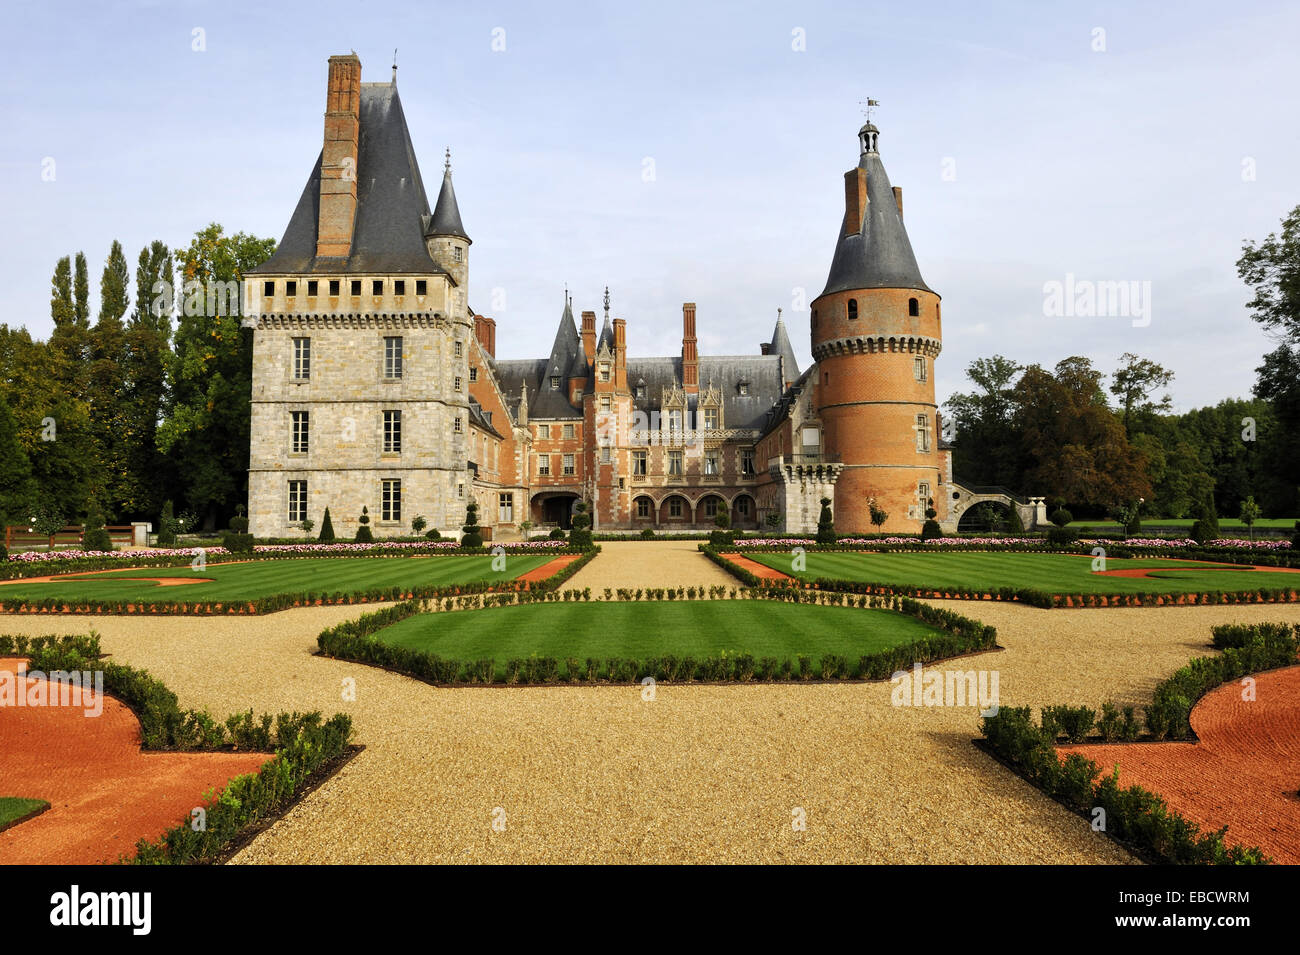 French formal garden style laid out by the master gardener Patrick Pottier according to the plans of Andre Le Notre - Stock Image